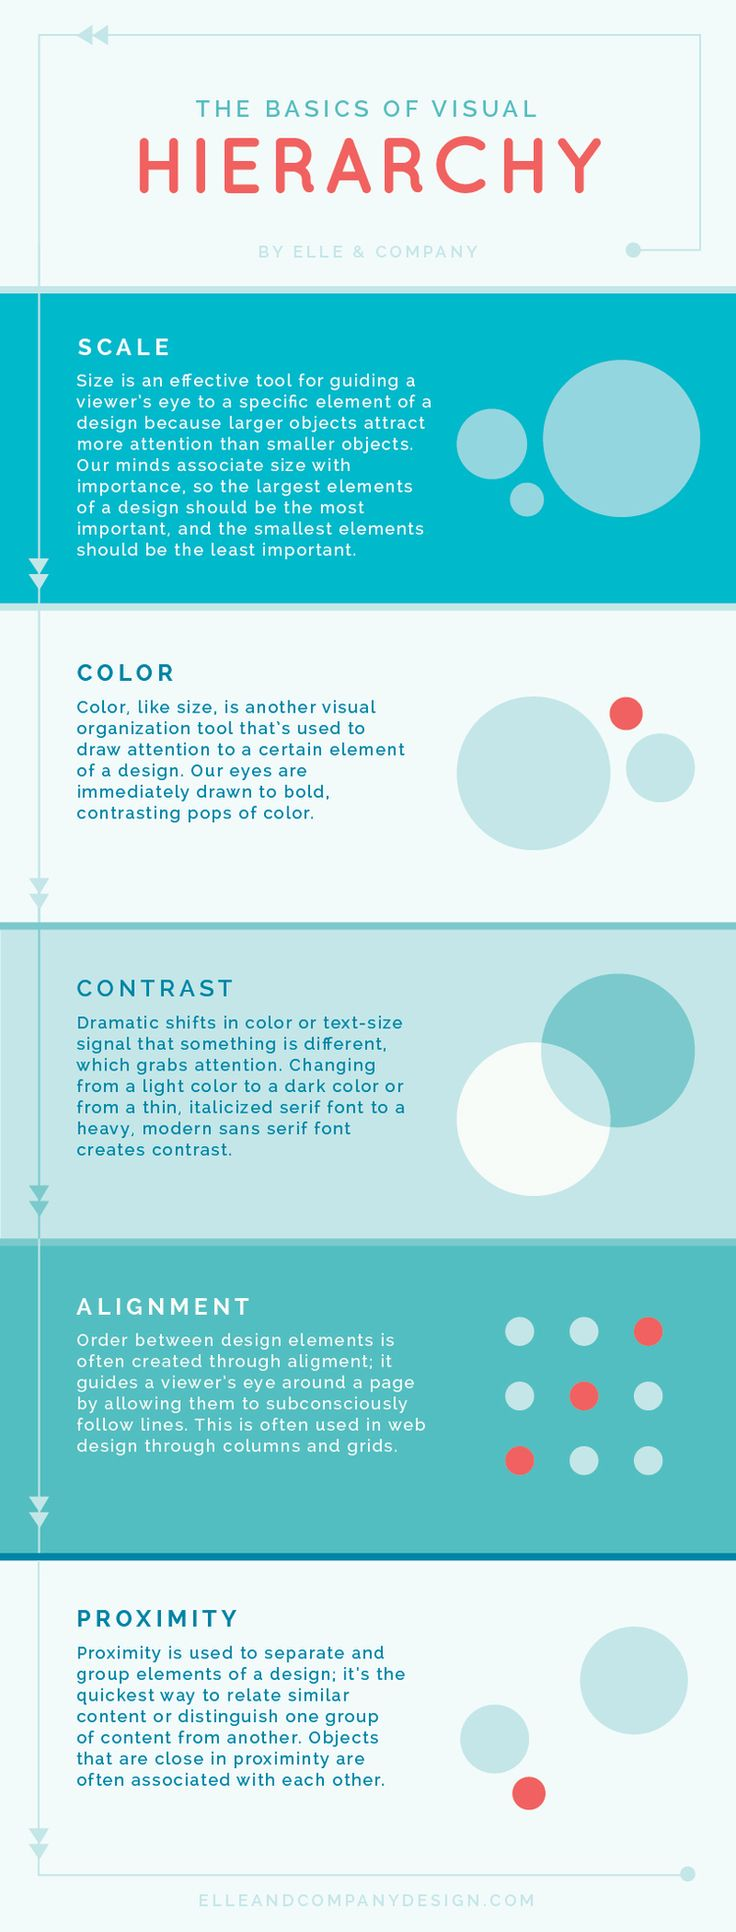 The Basics of Visual Hierarchy (and why it's important for your website!) - Elle & Company